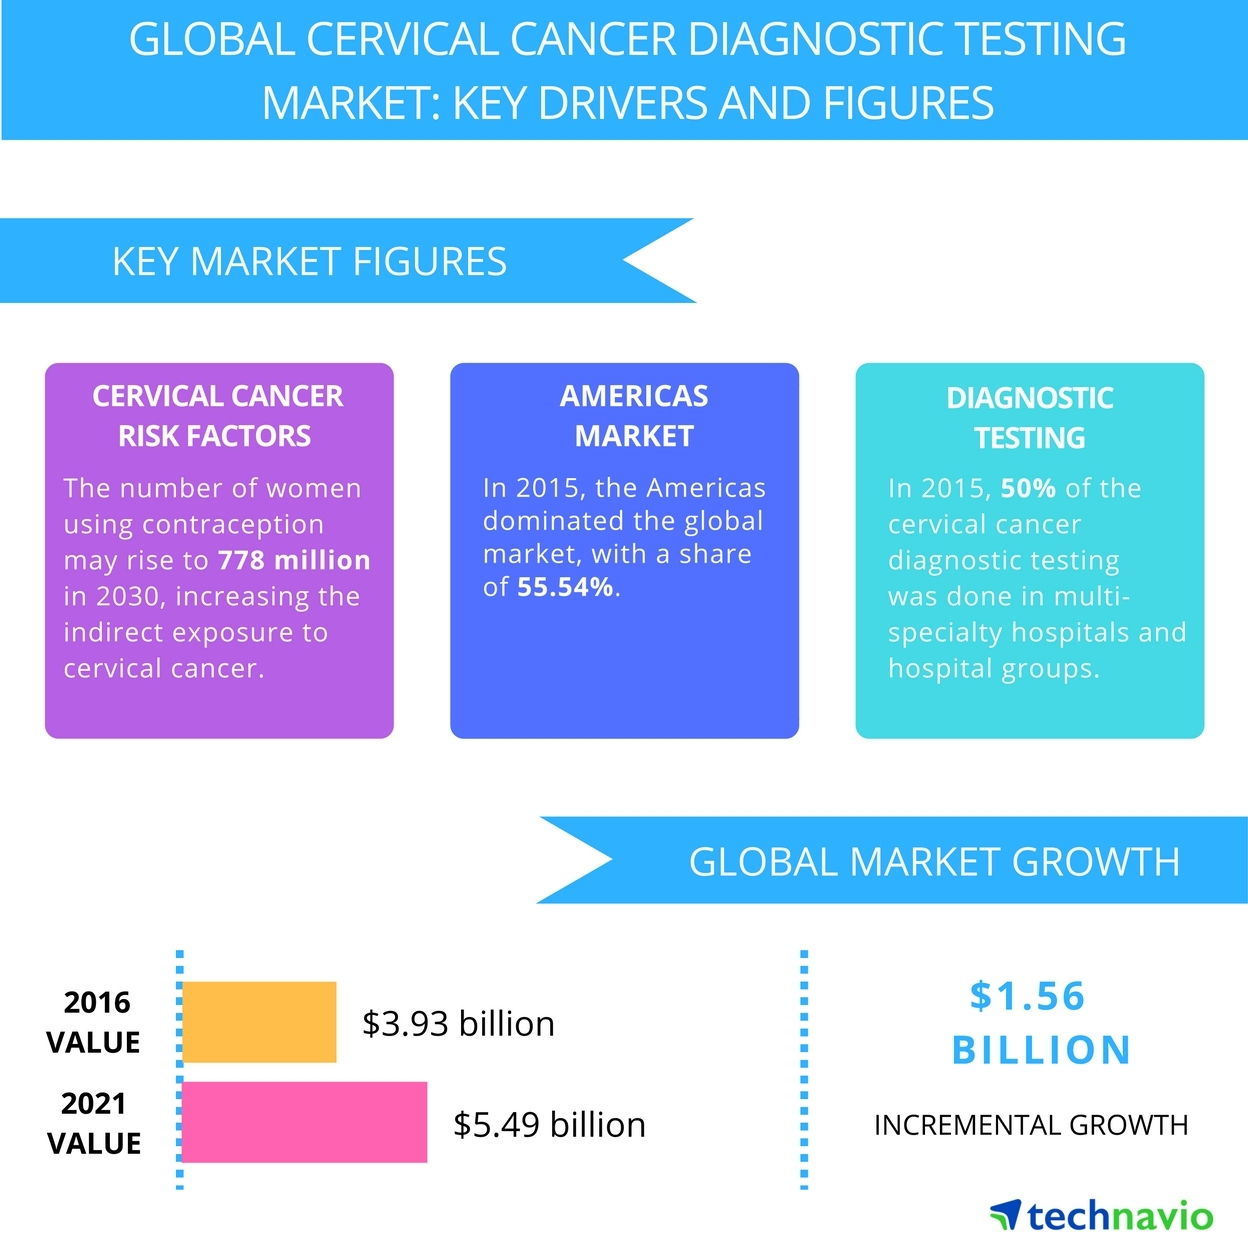 Top 4 Emerging Trends Impacting the Global Cervical Cancer